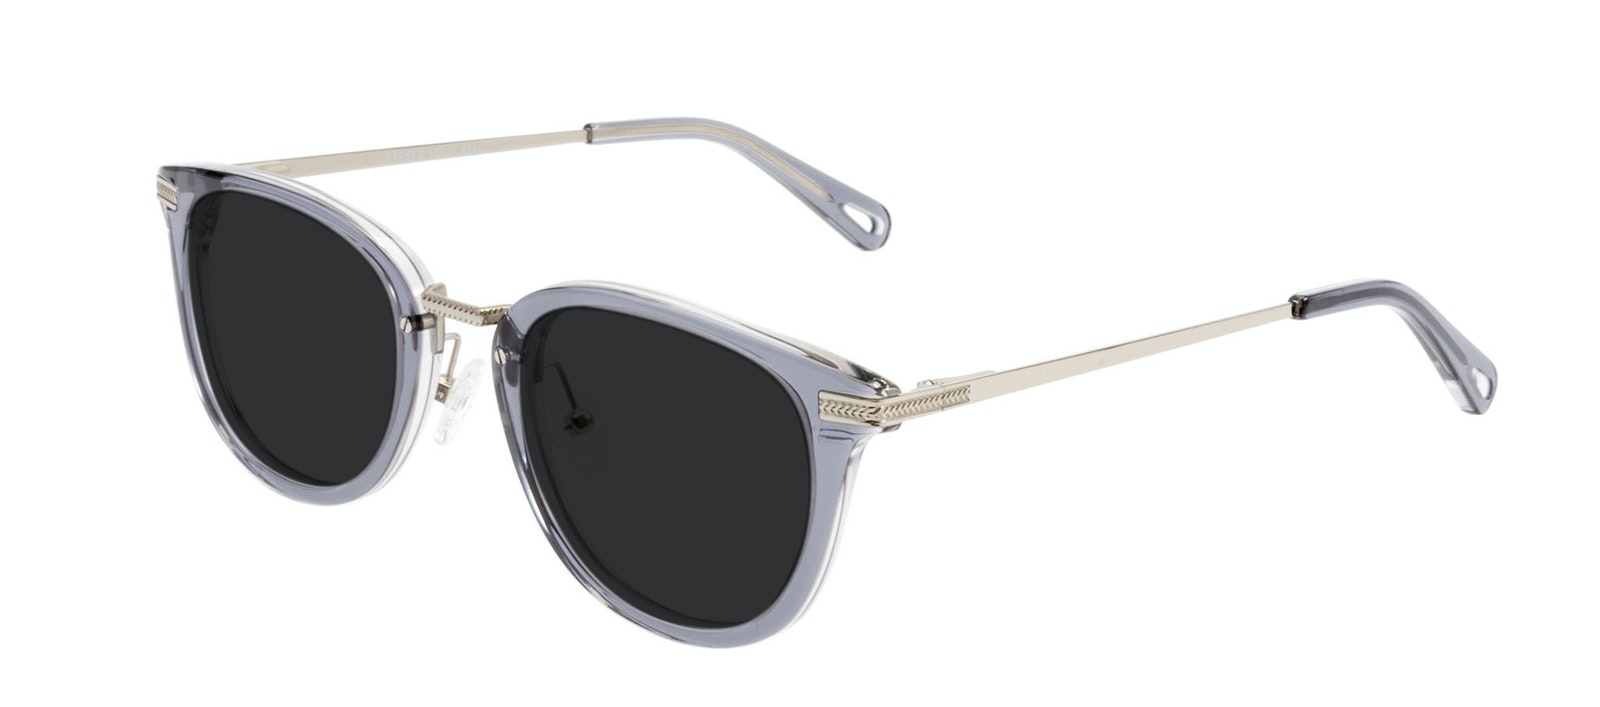 Affordable Fashion Glasses Rectangle Square Sunglasses Men Street Soul Ash Tilt